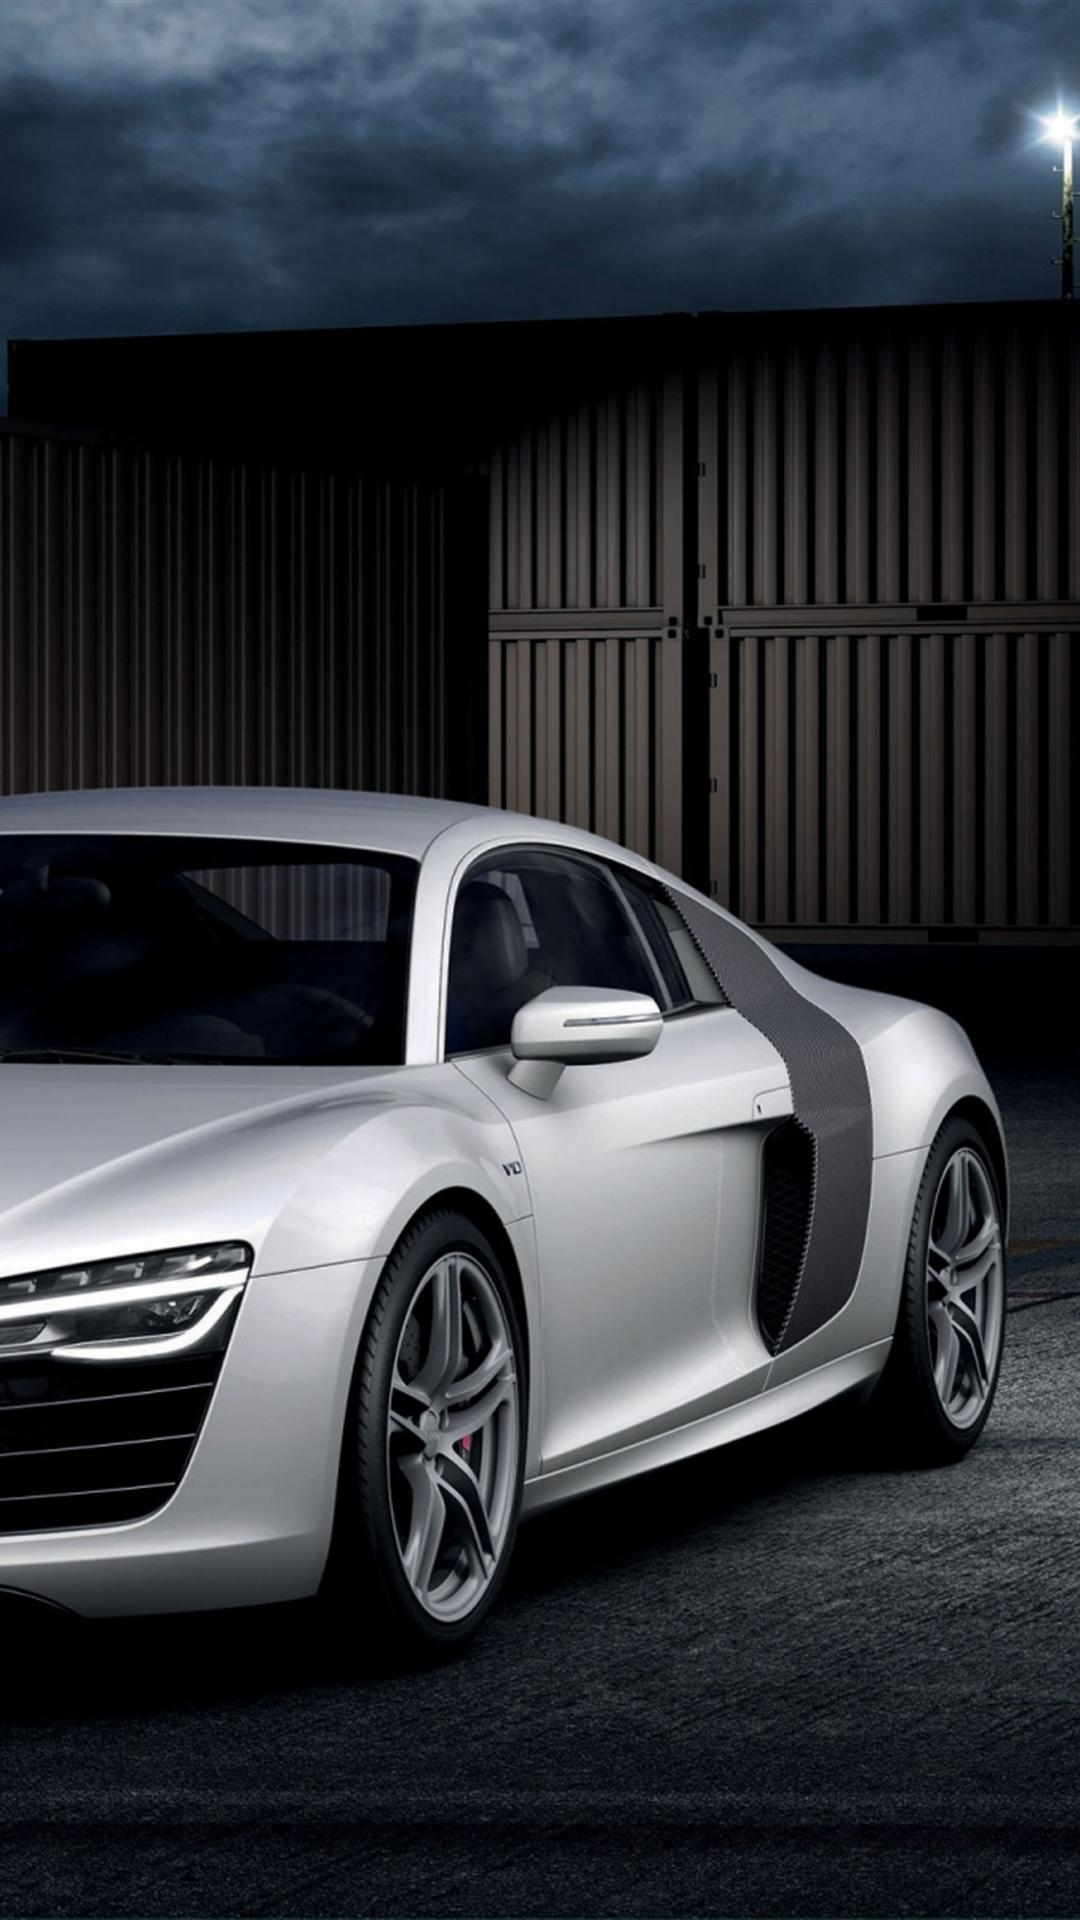 Hd Wallpaper Cars Free Download Audi R8 Android Wallpaper Android Hd Wallpapers